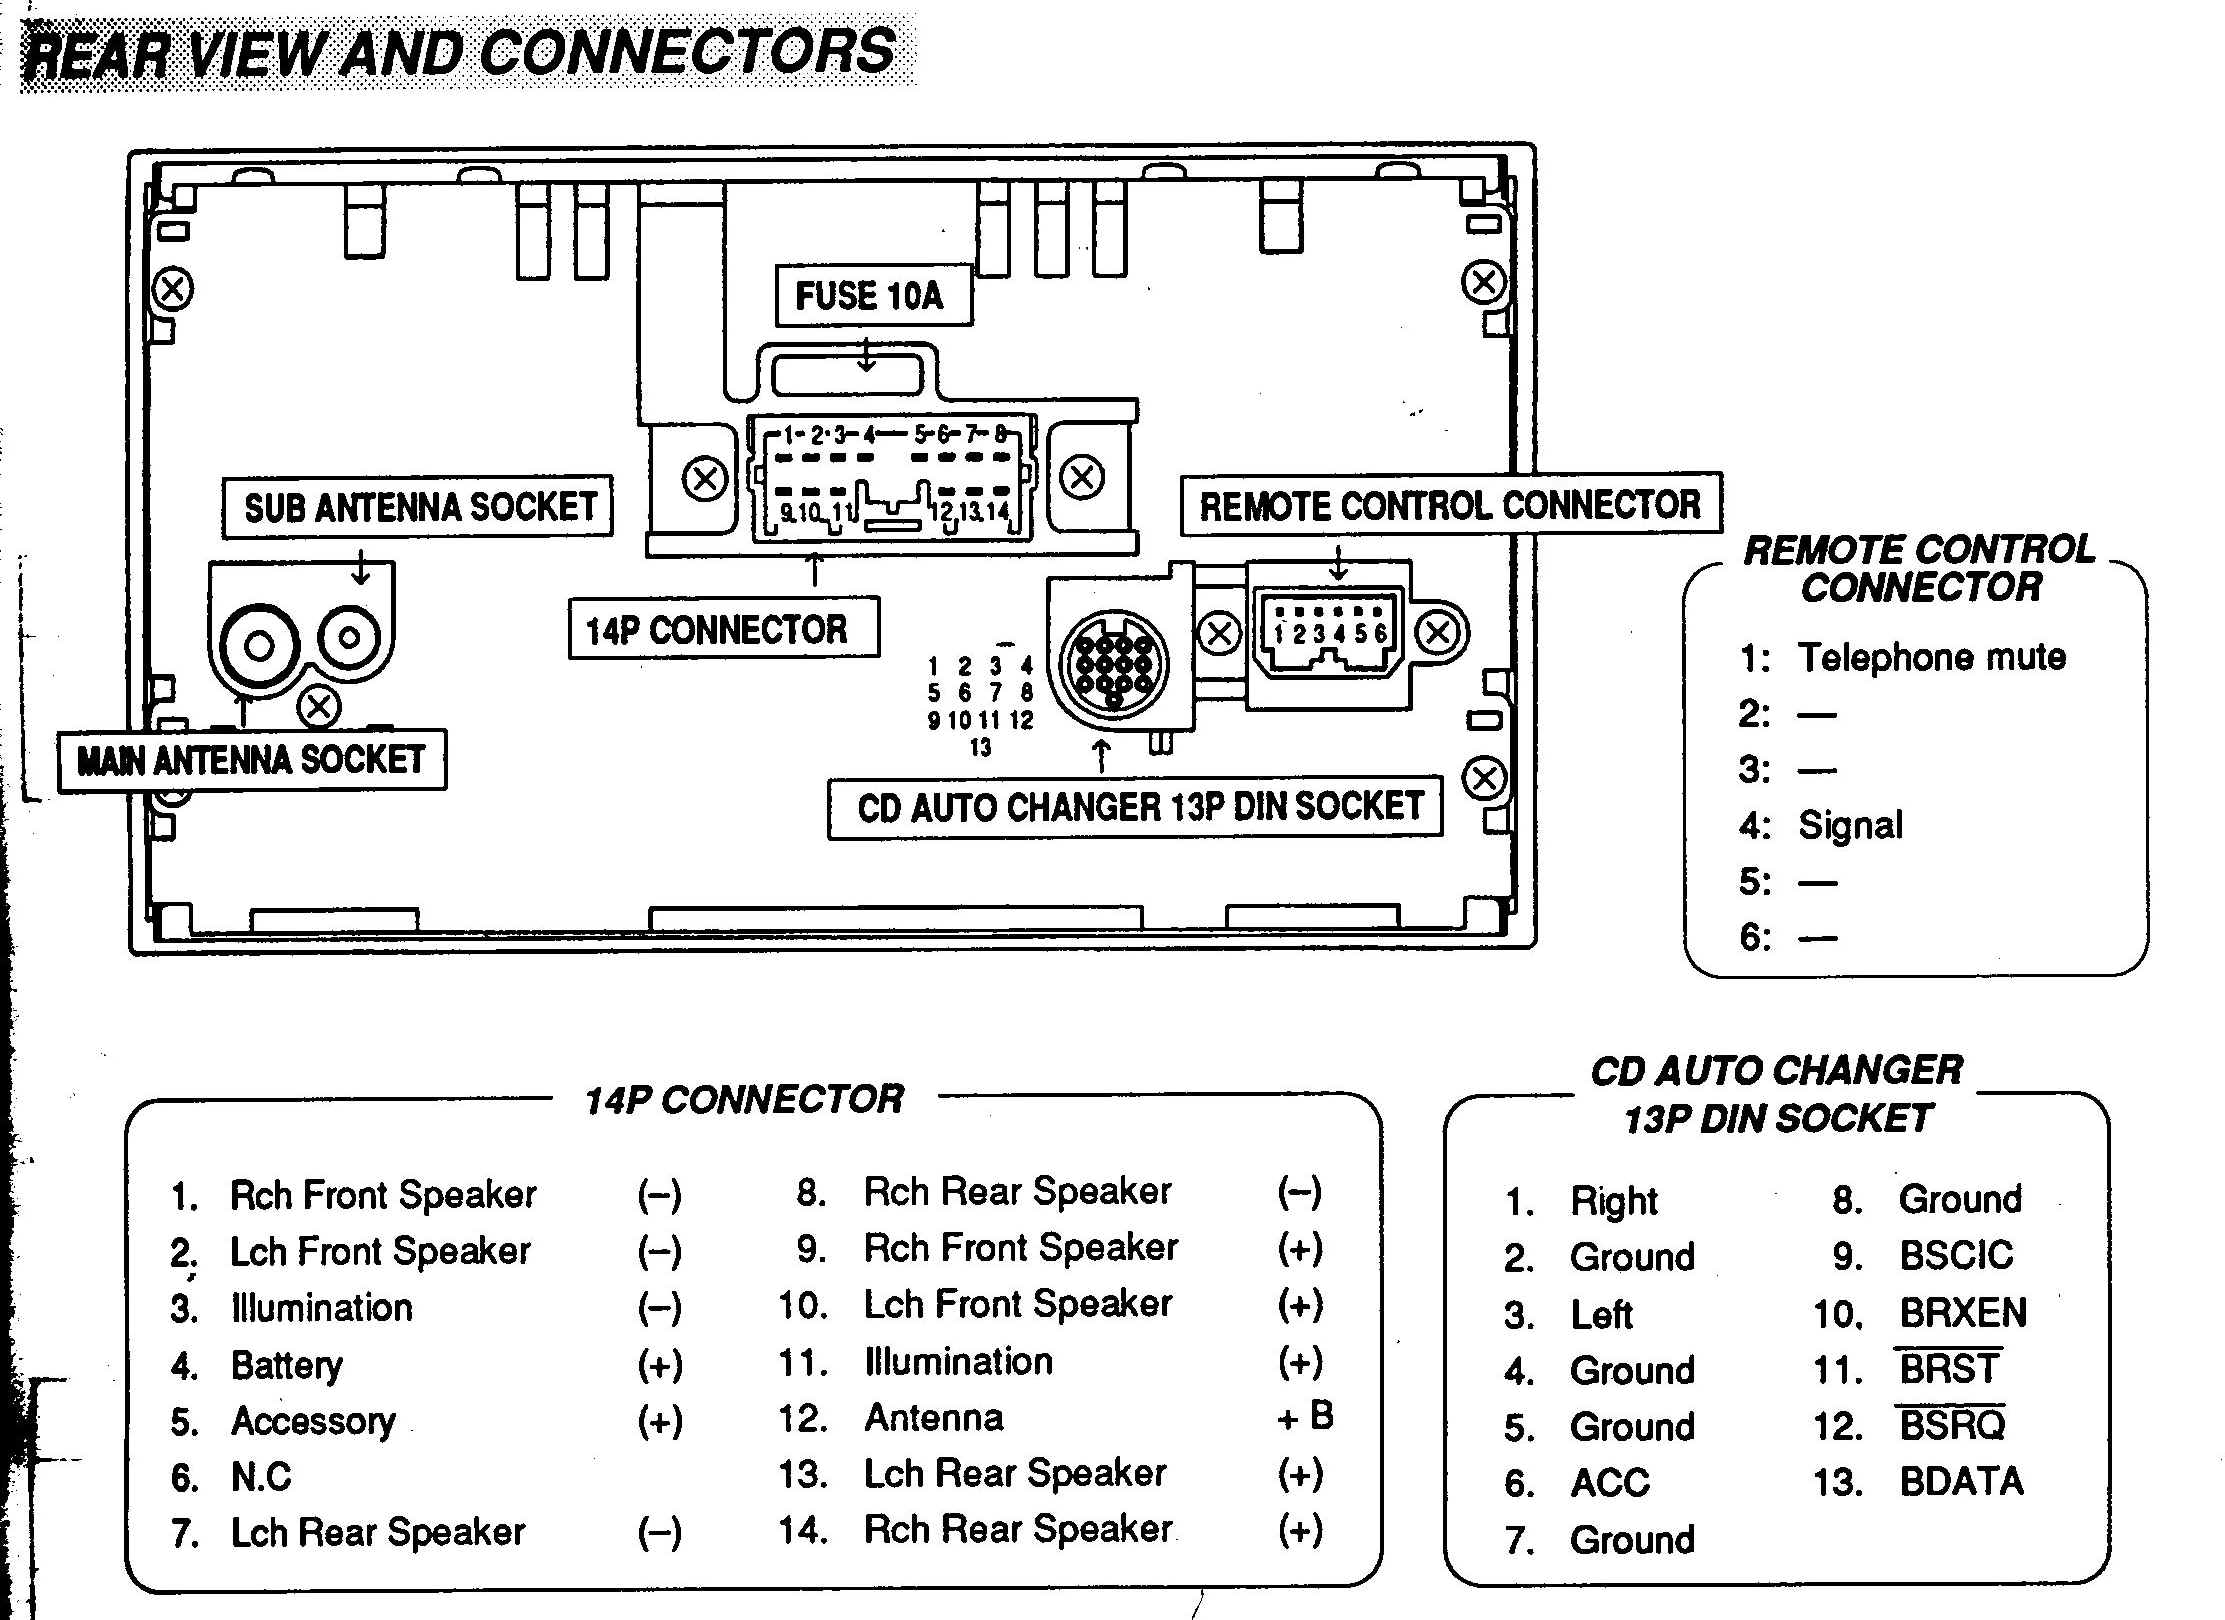 WireHarnessMit121003 mitsubishi radio wiring diagram mitsubishi eclipse wiring diagram 2001 mitsubishi eclipse headlight wiring diagram at bakdesigns.co